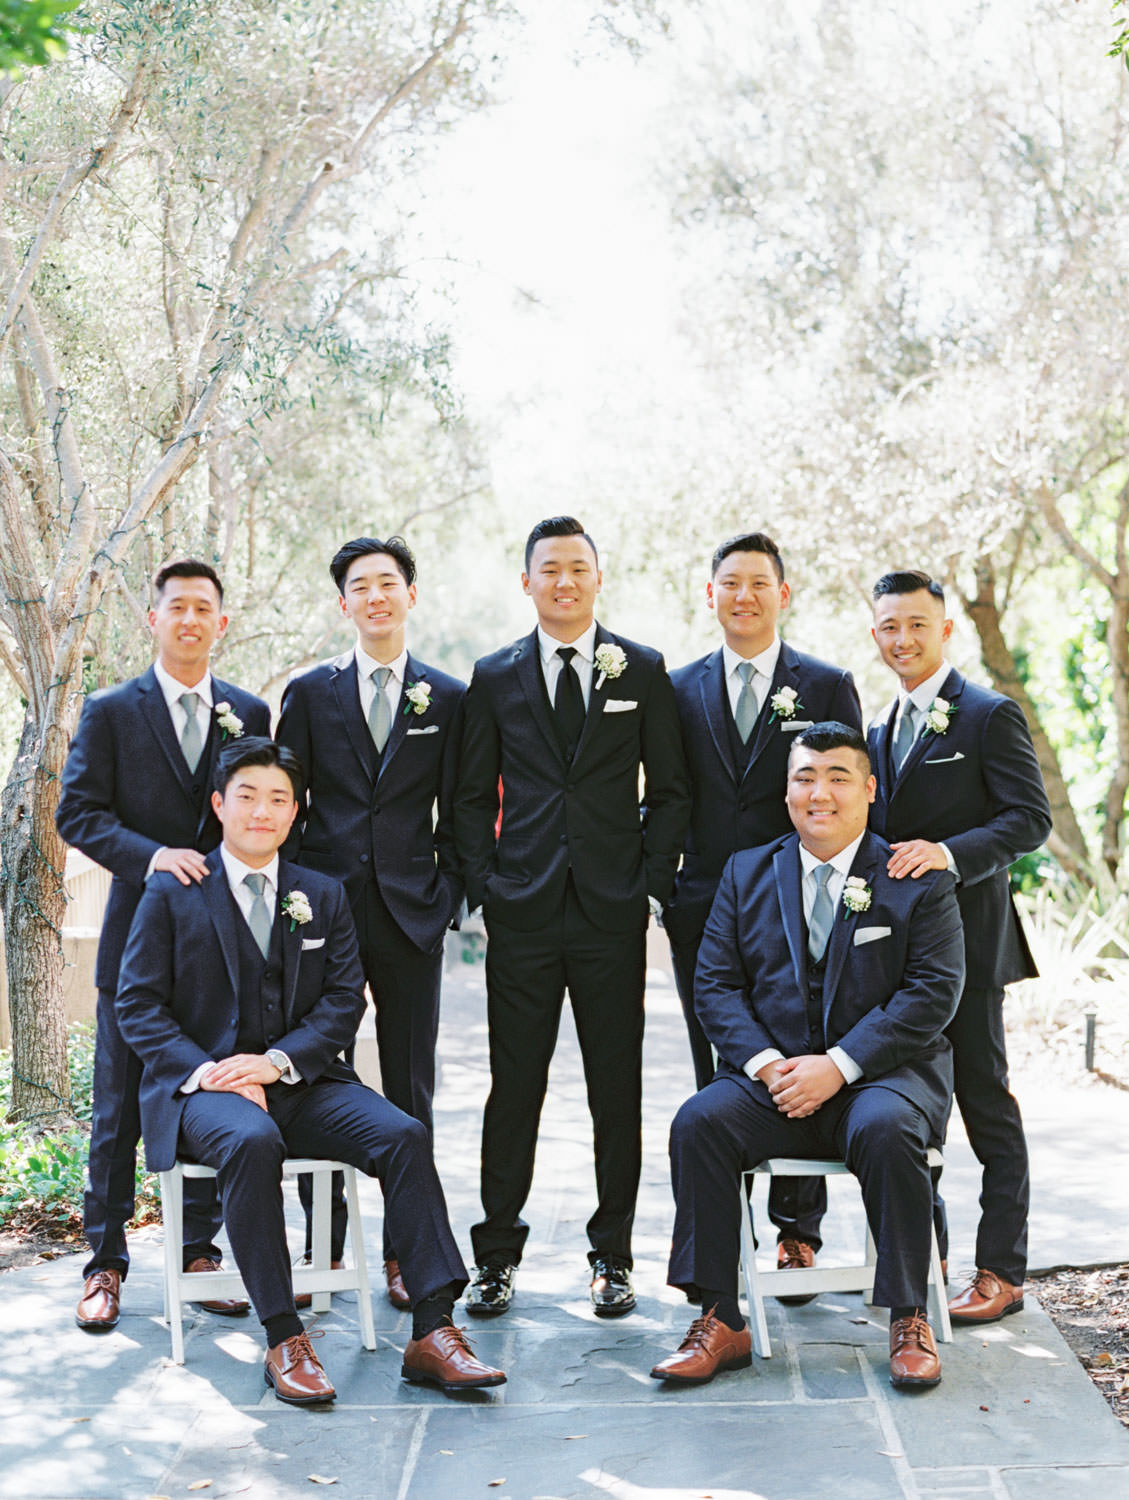 Bridal party portrait with groom in black tux and groomsmen in navy suits. Rancho Bernardo Inn wedding. Film photo by Cavin Elizabeth Photography